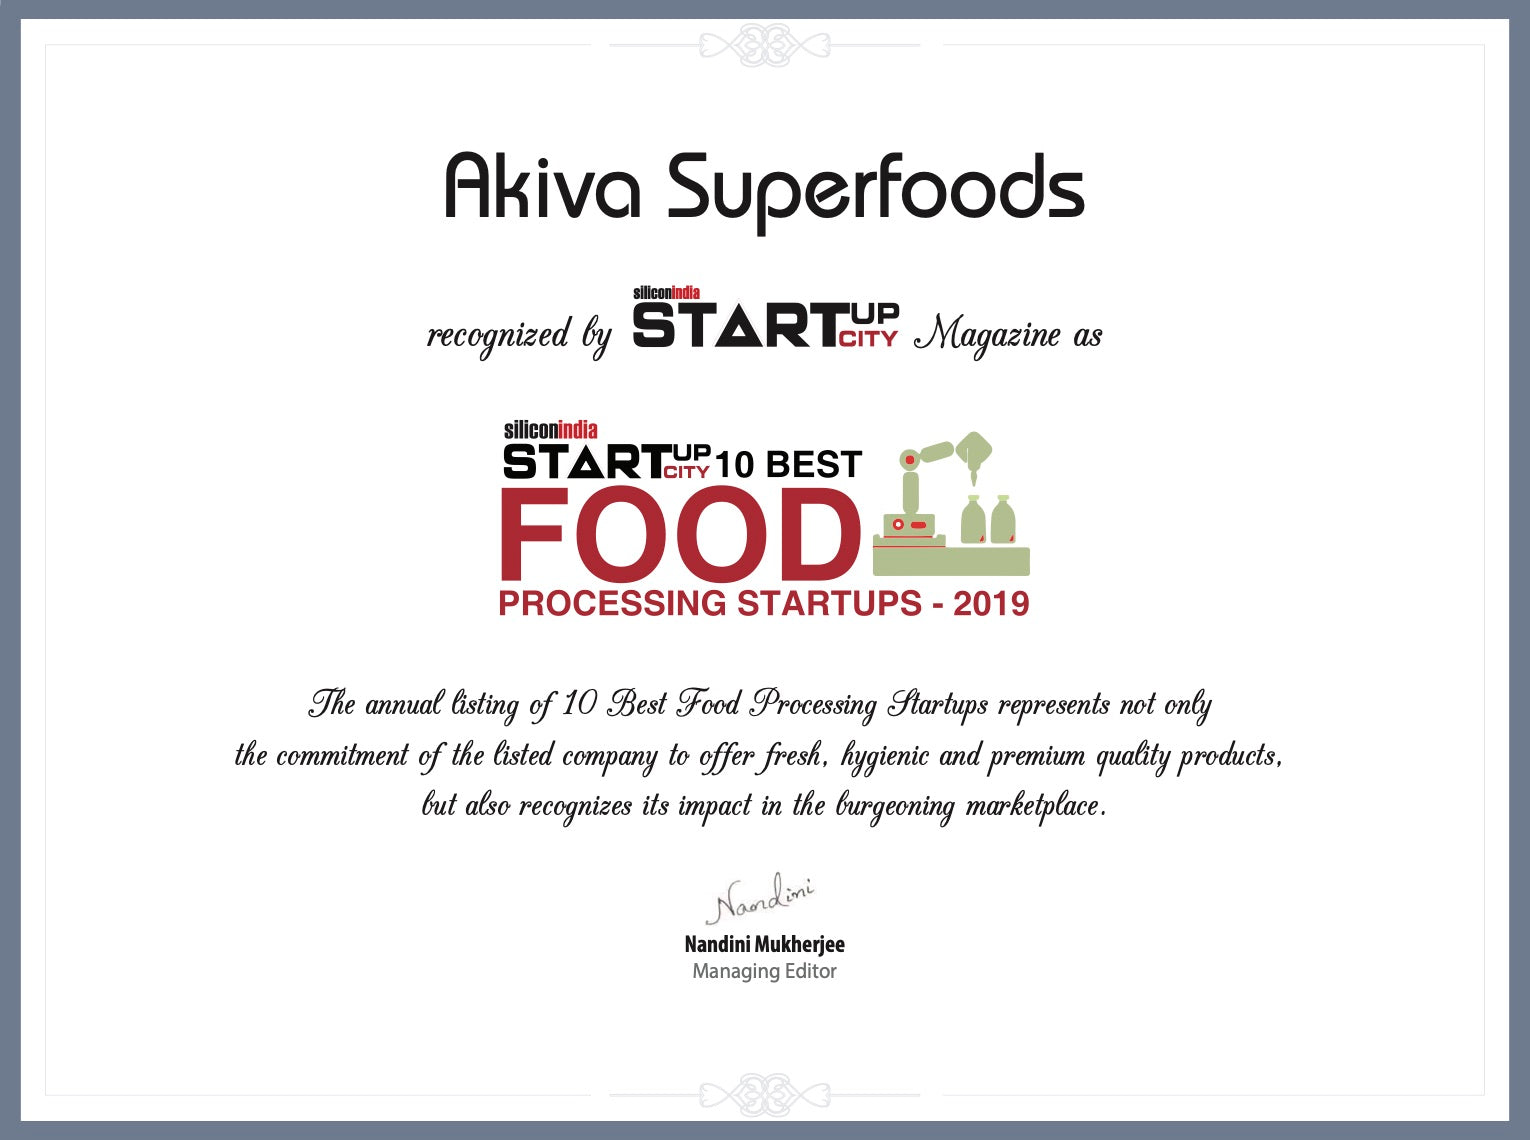 Akiva Superfoods part of 'Best Food Processing Startups, 2019' by Silicon India Magazine